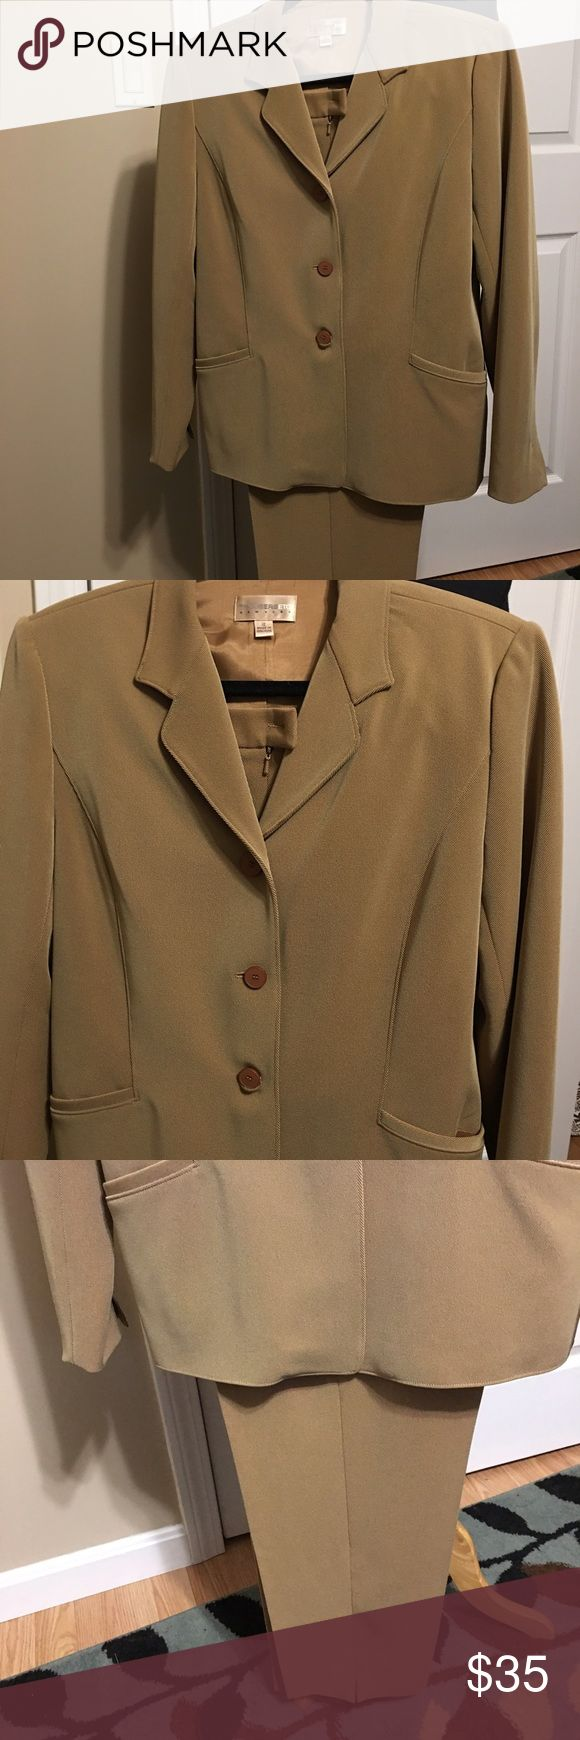 Ladies Pant/Jacket set Ladies pant and jacket set . Like new! Camel color. Pants are side zip. TrousersEtc  Other